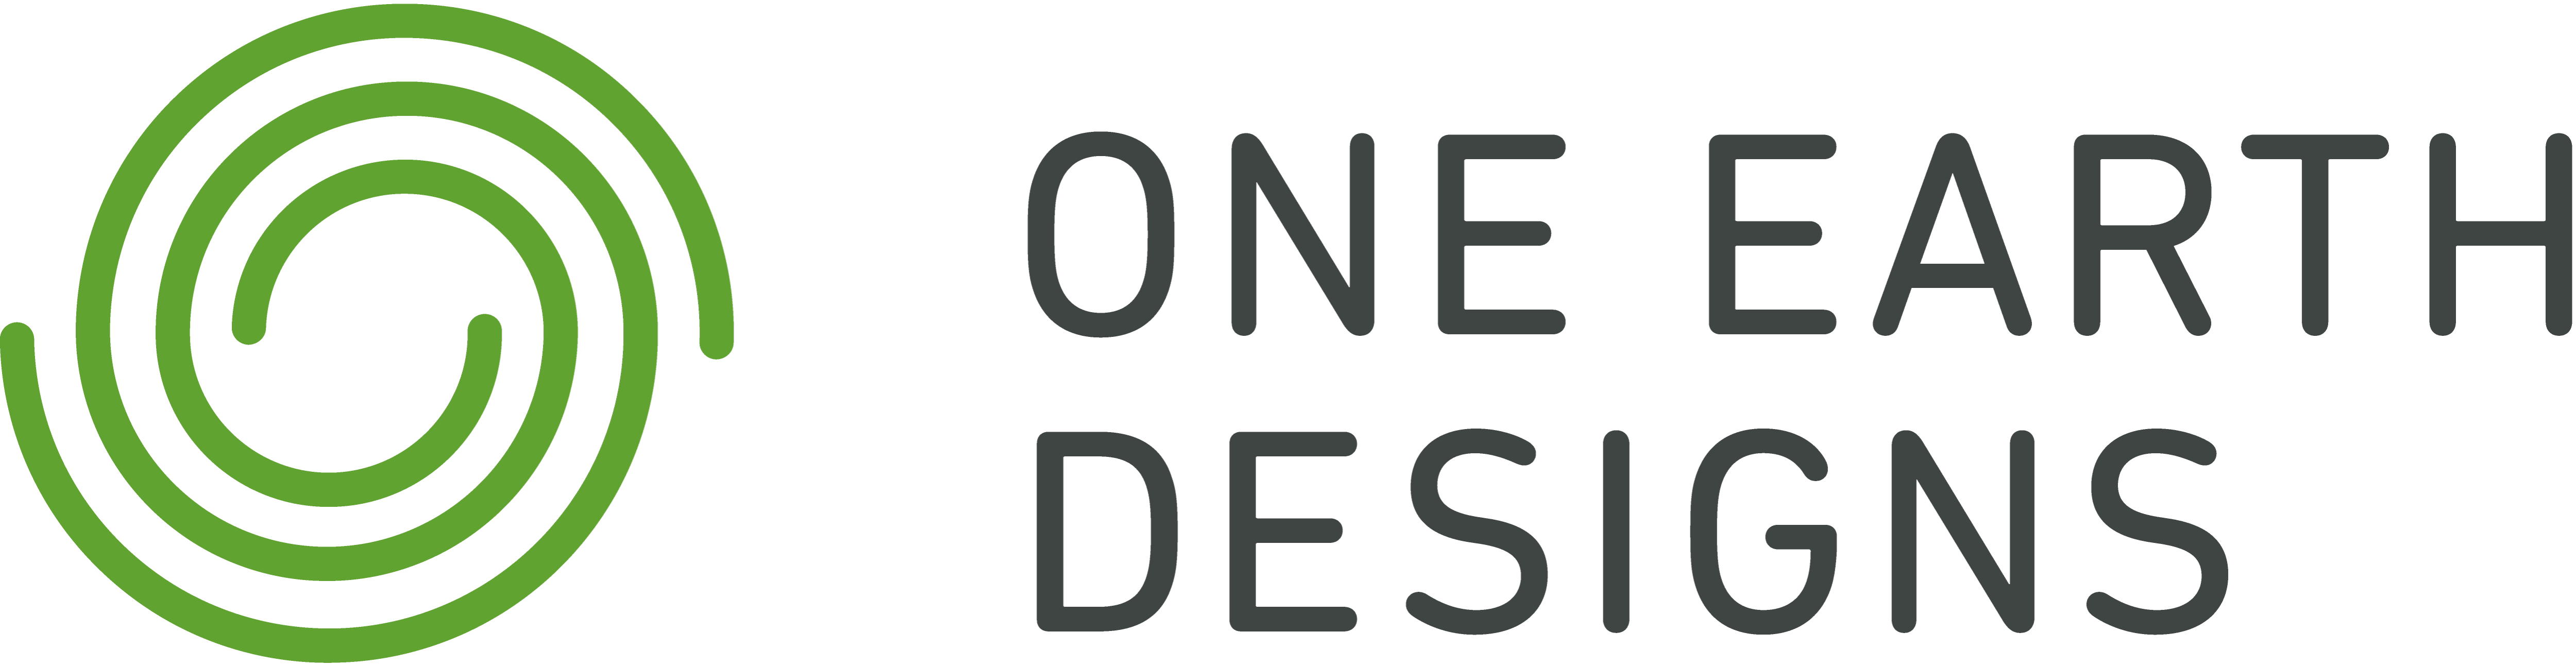 One Earth Designs logo